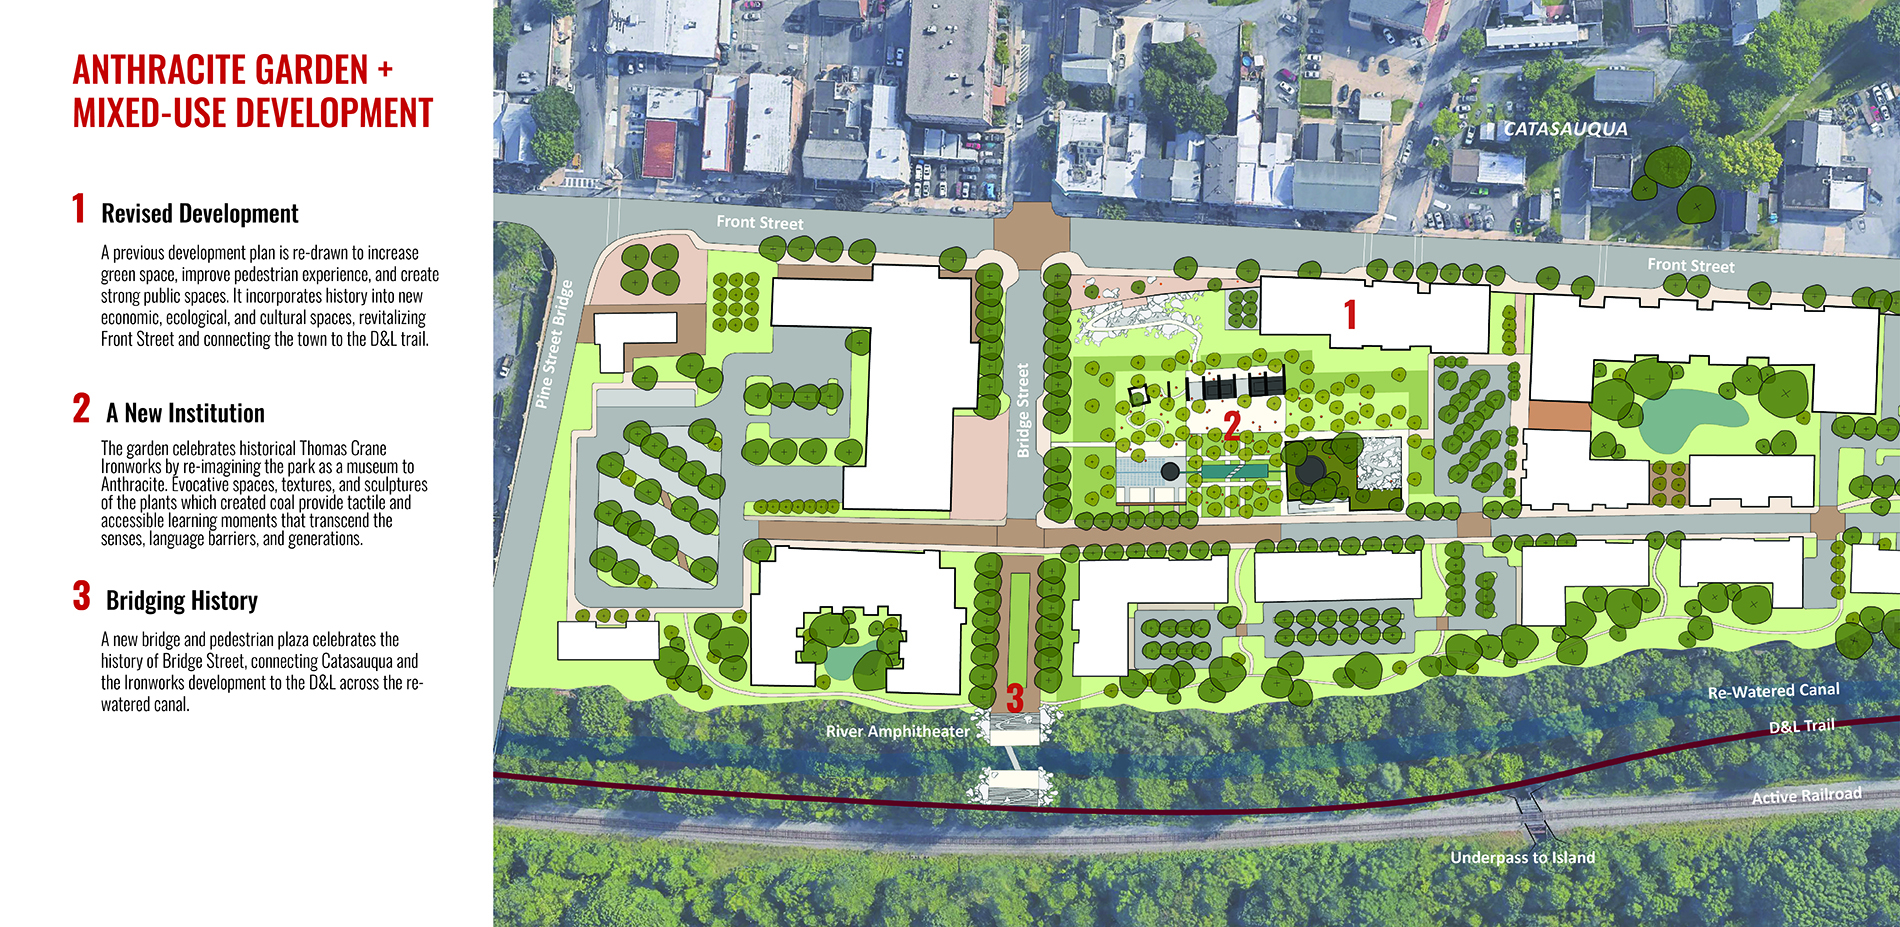 Anthracite Garden + Mixed Use Development: Plan